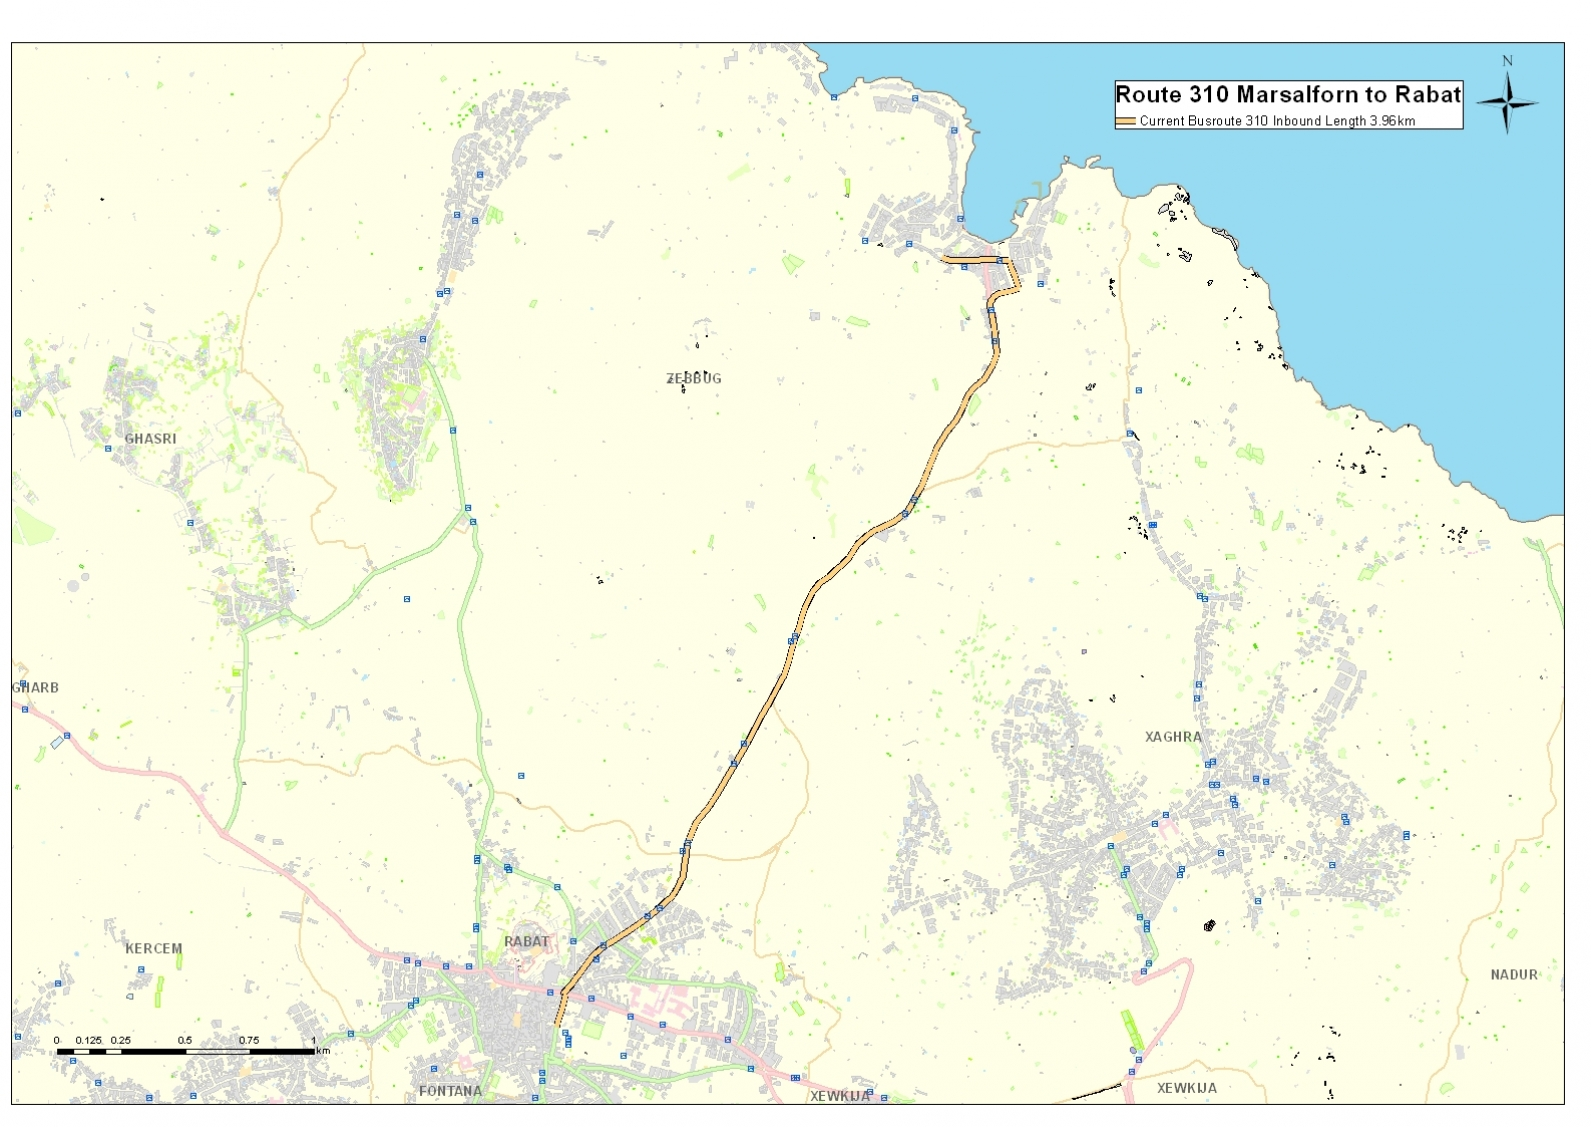 Land-current-network-routes-and-schedules-Gozo-19